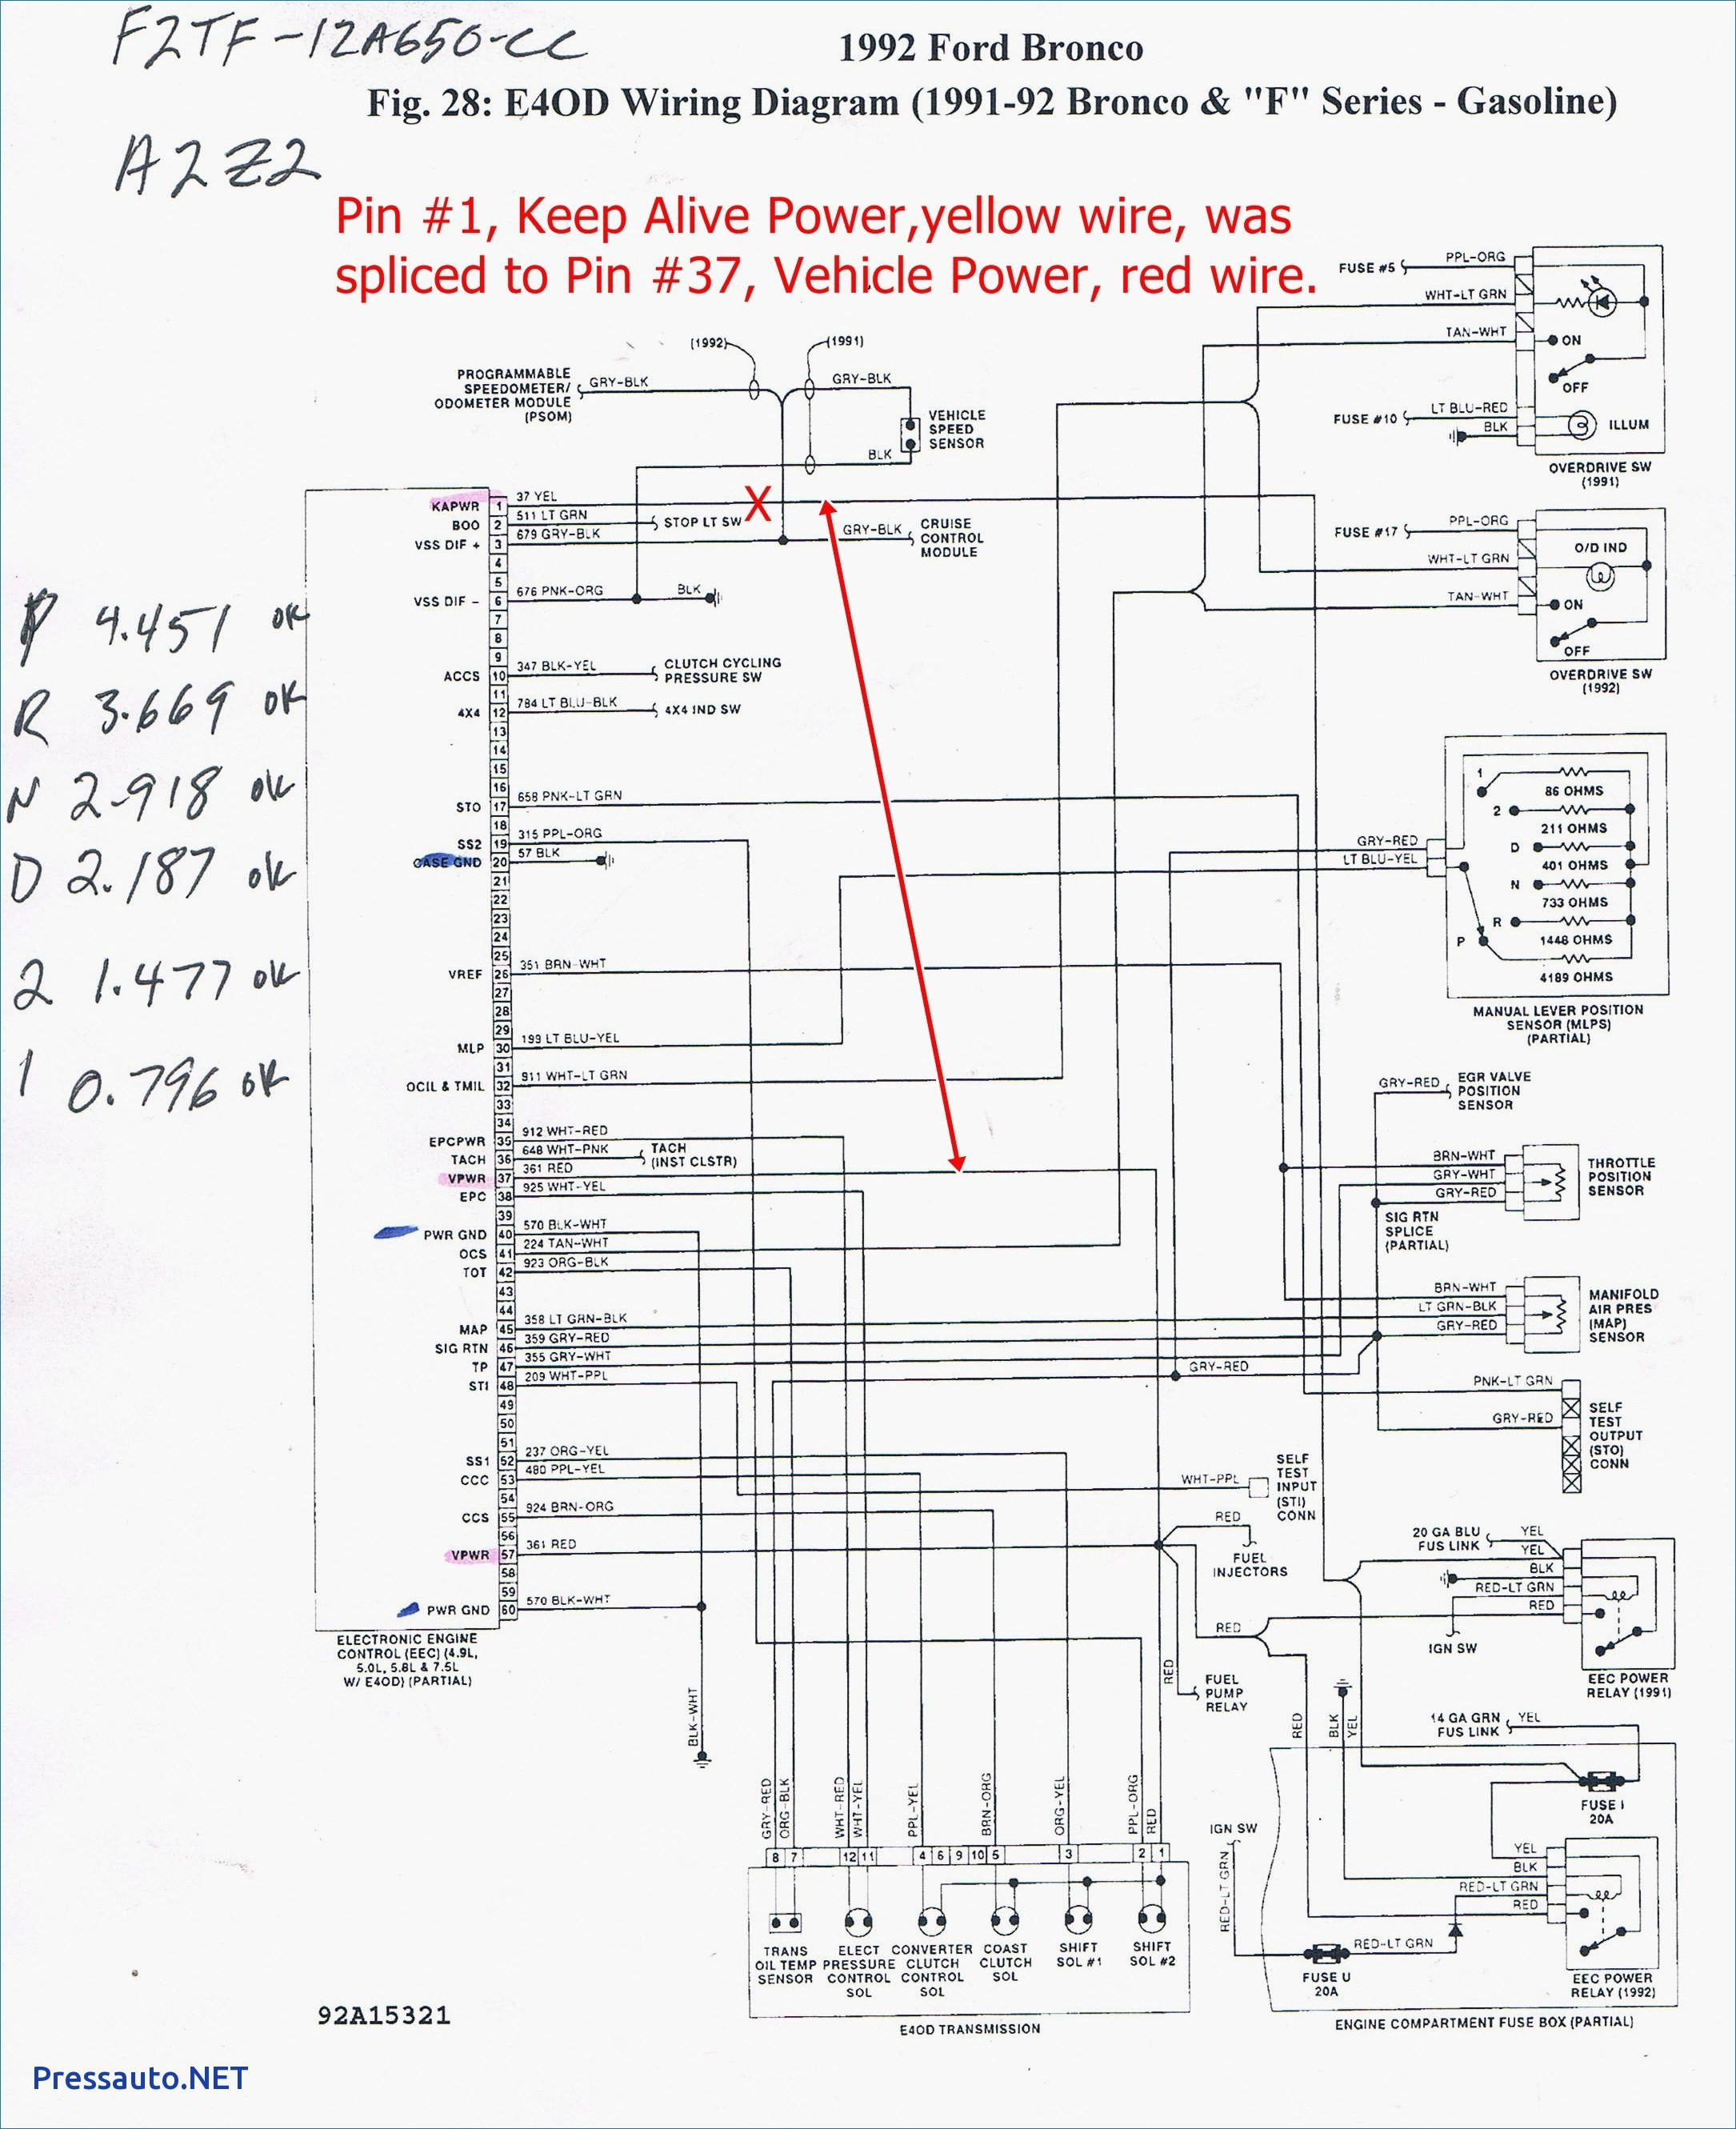 Dodge Ram 1500 Wiring Harness | Wiring Diagram - Dodge Ram Wiring Harness Diagram